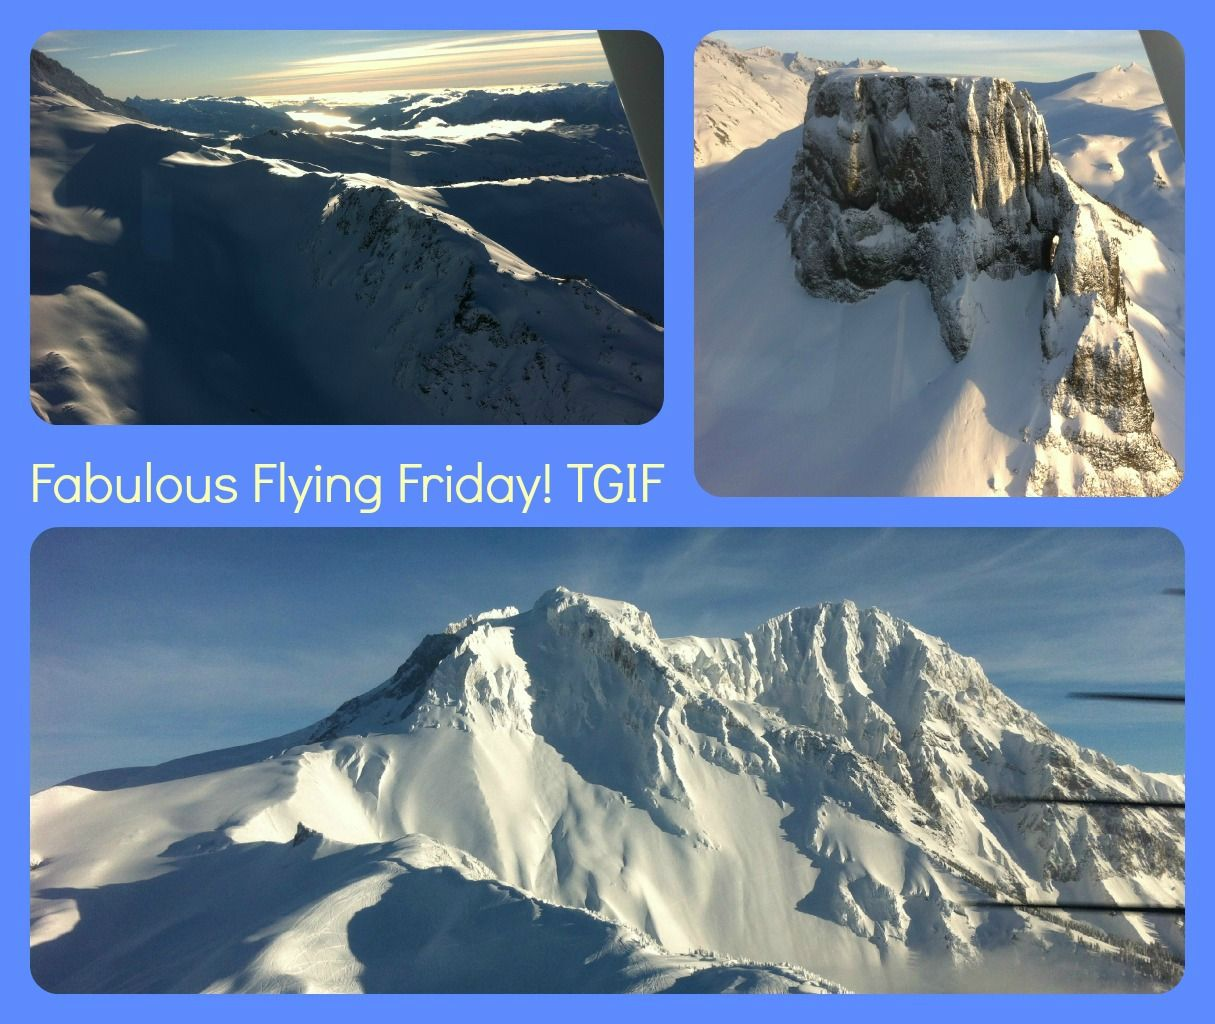 TGIF Fabulous Flying Friday! Living the life one cloud at